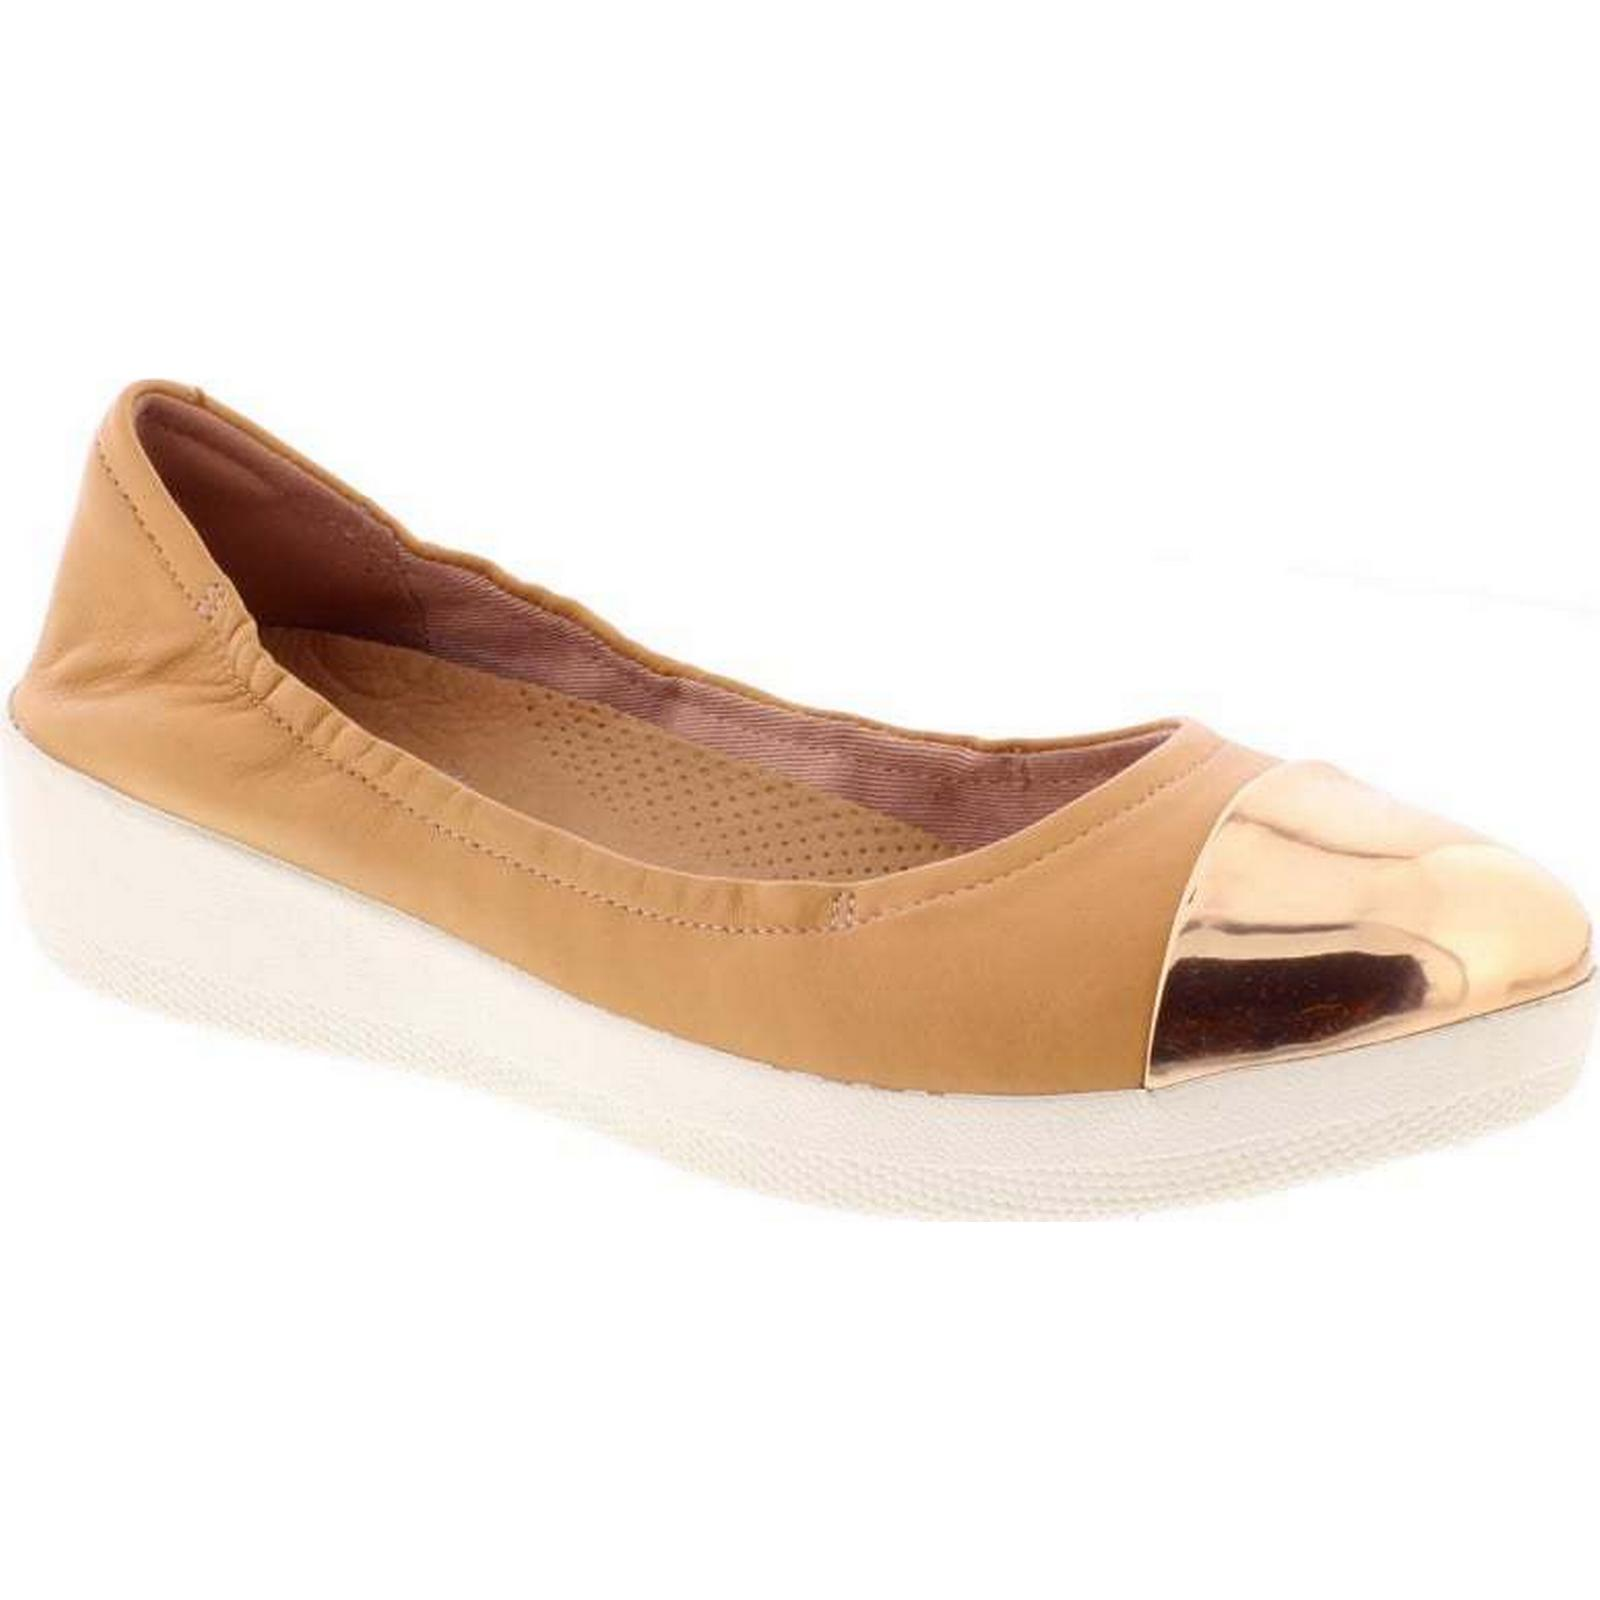 FitFlop™ FitFlop Superbendy Mirror Toe Ballerina - Nude Leather 5 Size: 5 Leather UK d36251